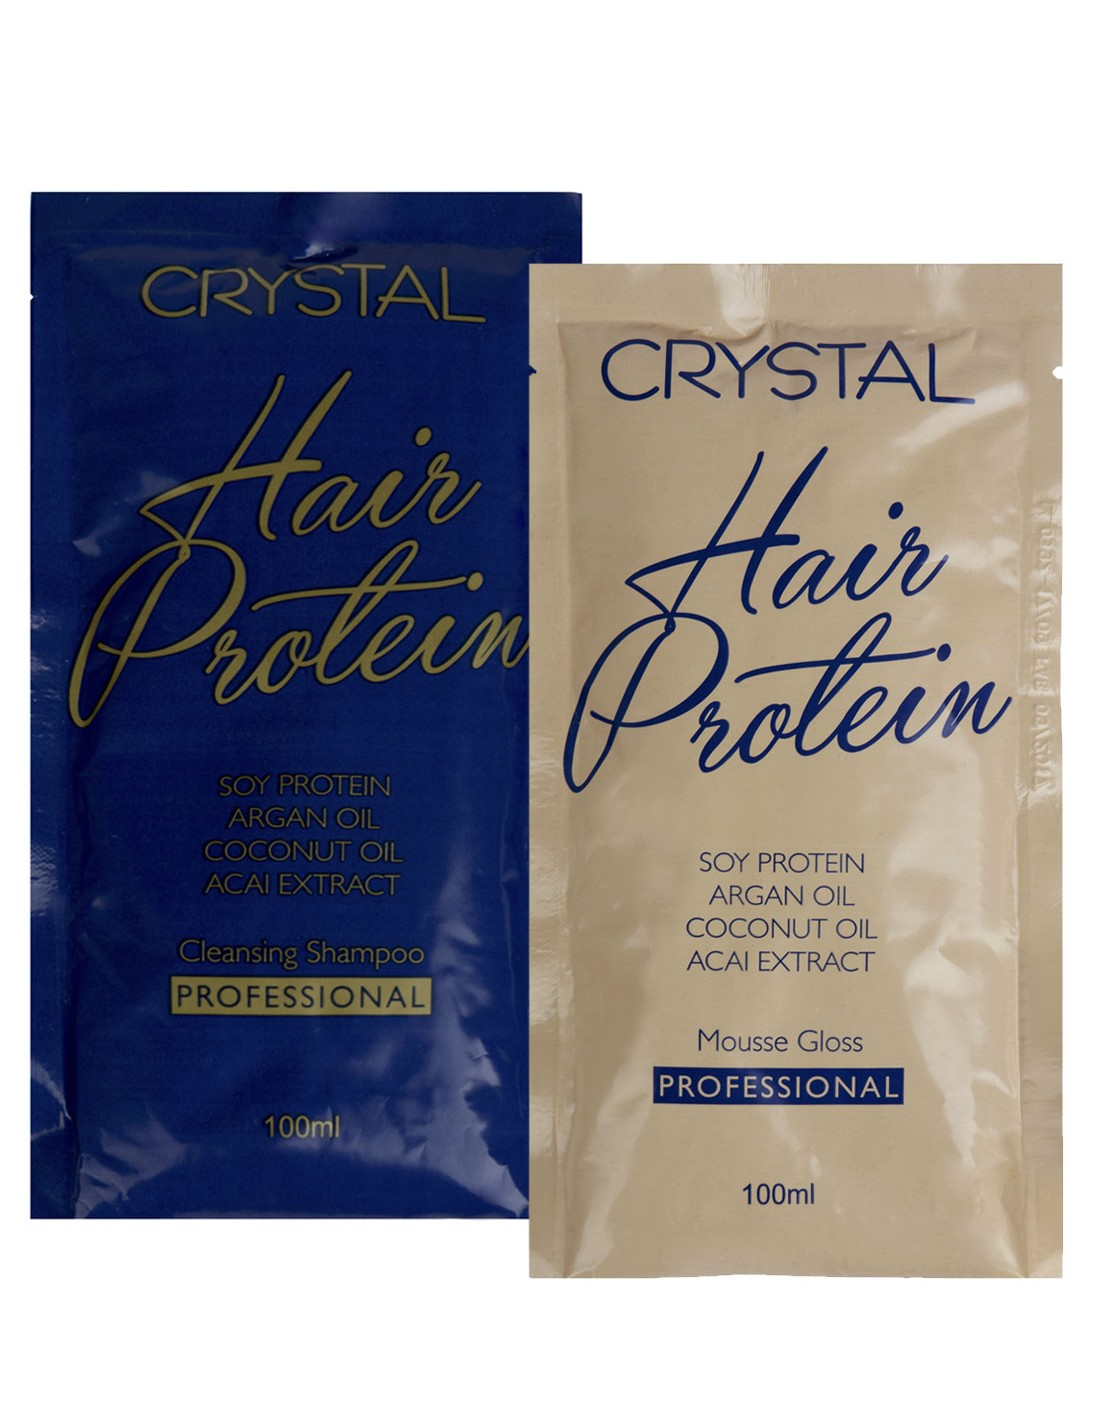 Crystal hair protein set 100ml